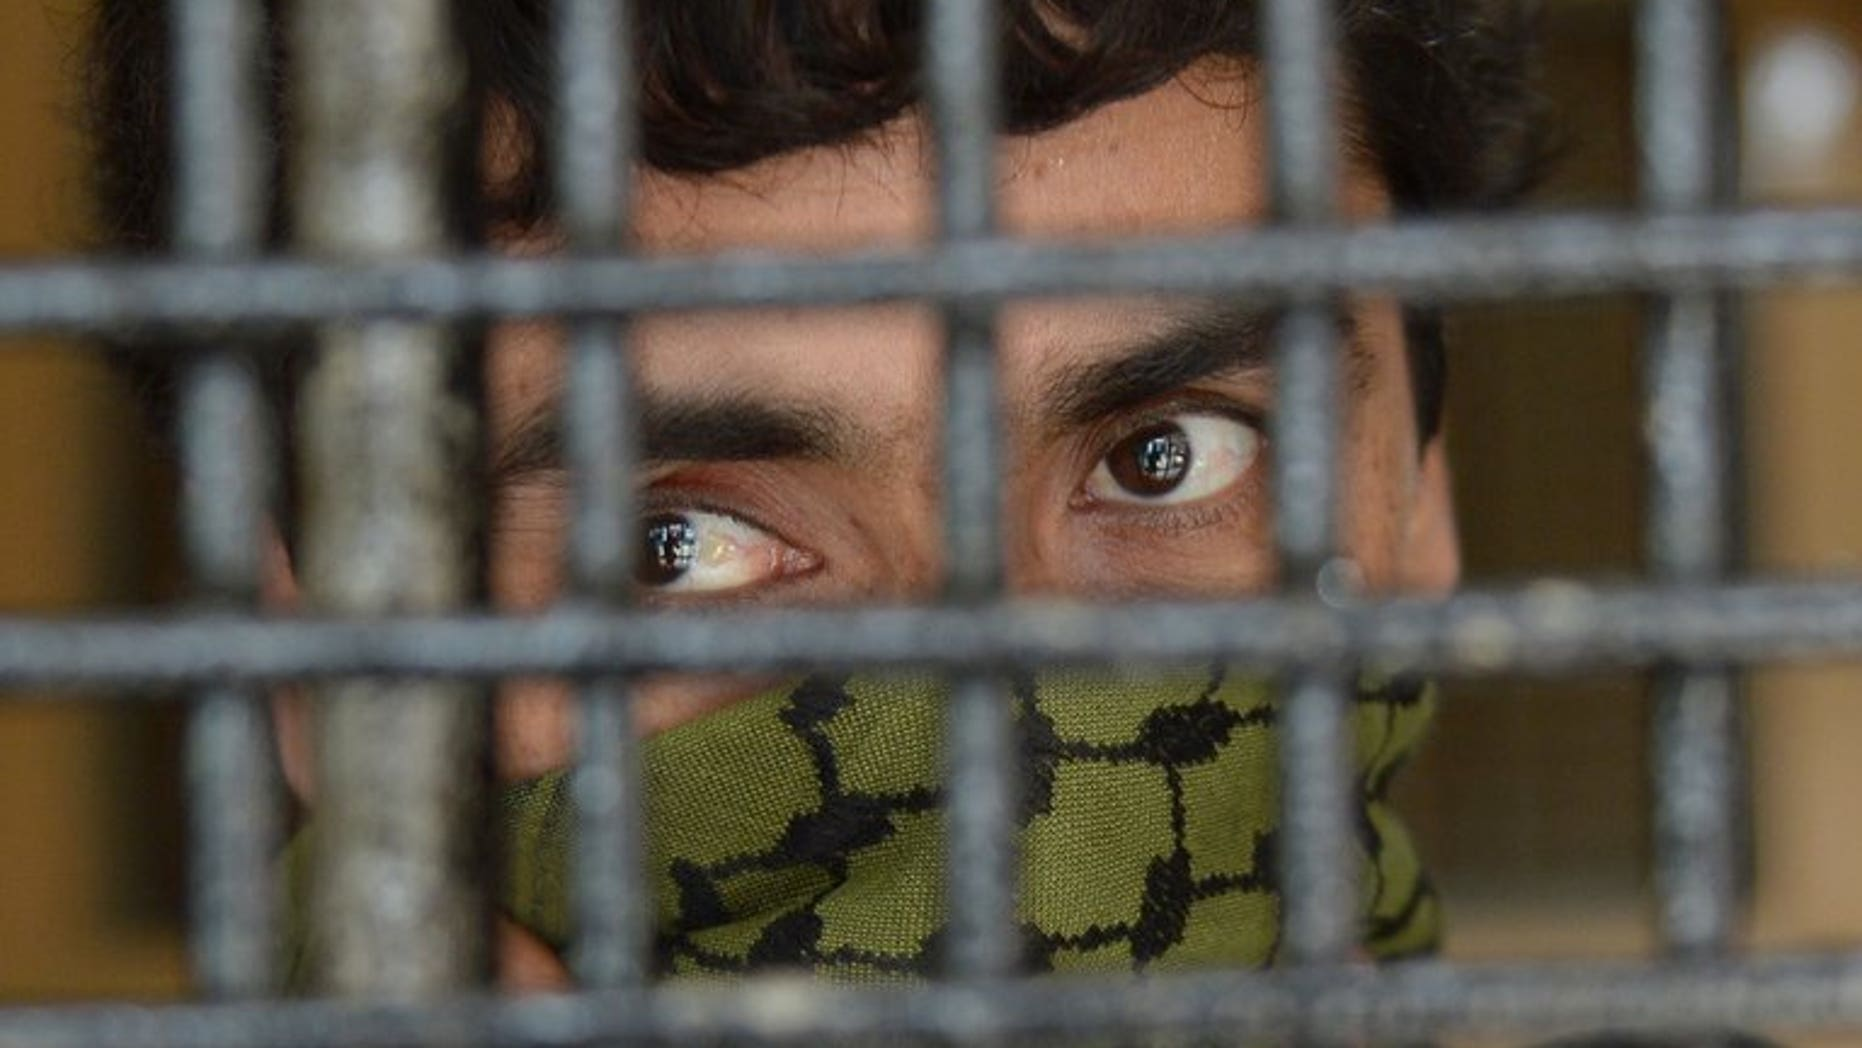 """Sayeed Abbas waits inside a detention room prior to his trial in Jakarta, on July 11, 2013. The court has rejected a request for the extradition of the alleged people-smuggling """"kingpin"""" to Australia, instead freeing the Afghan from detention."""